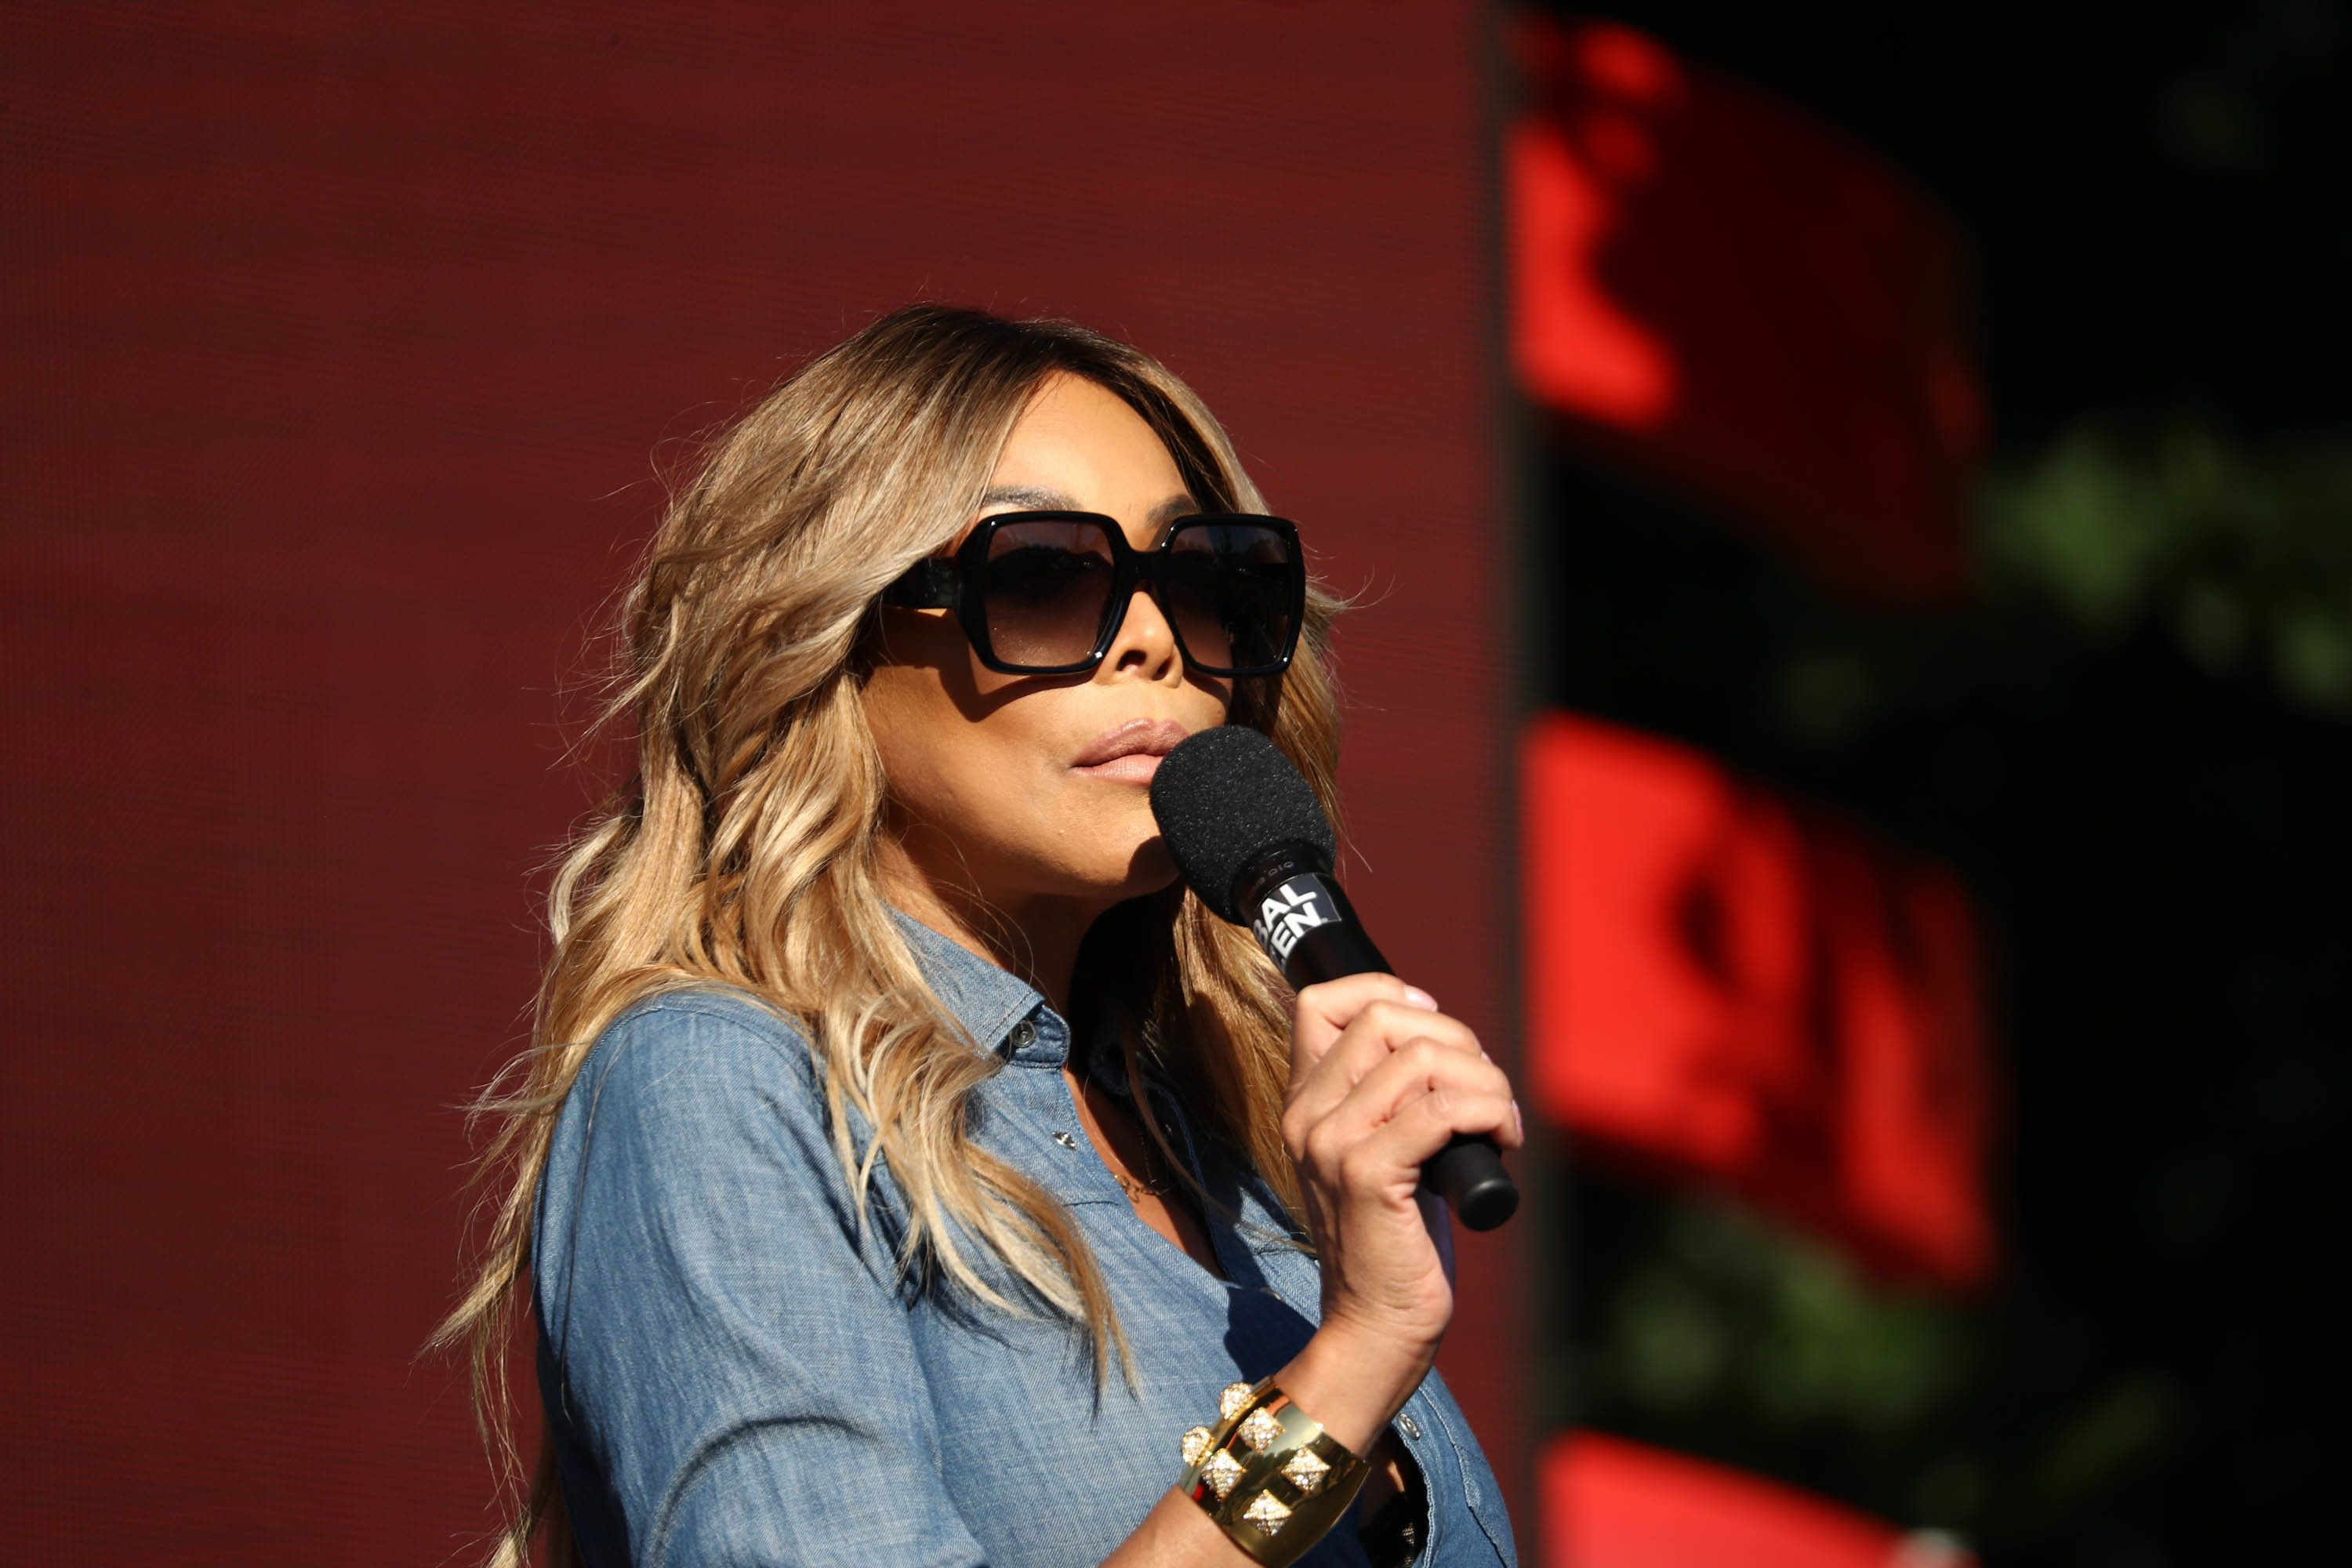 Photo by: John Nacion/STAR MAX/IPx 2017 9/23/17 Wendy Williams at The Global Citizen Festival 2017 in New York City.